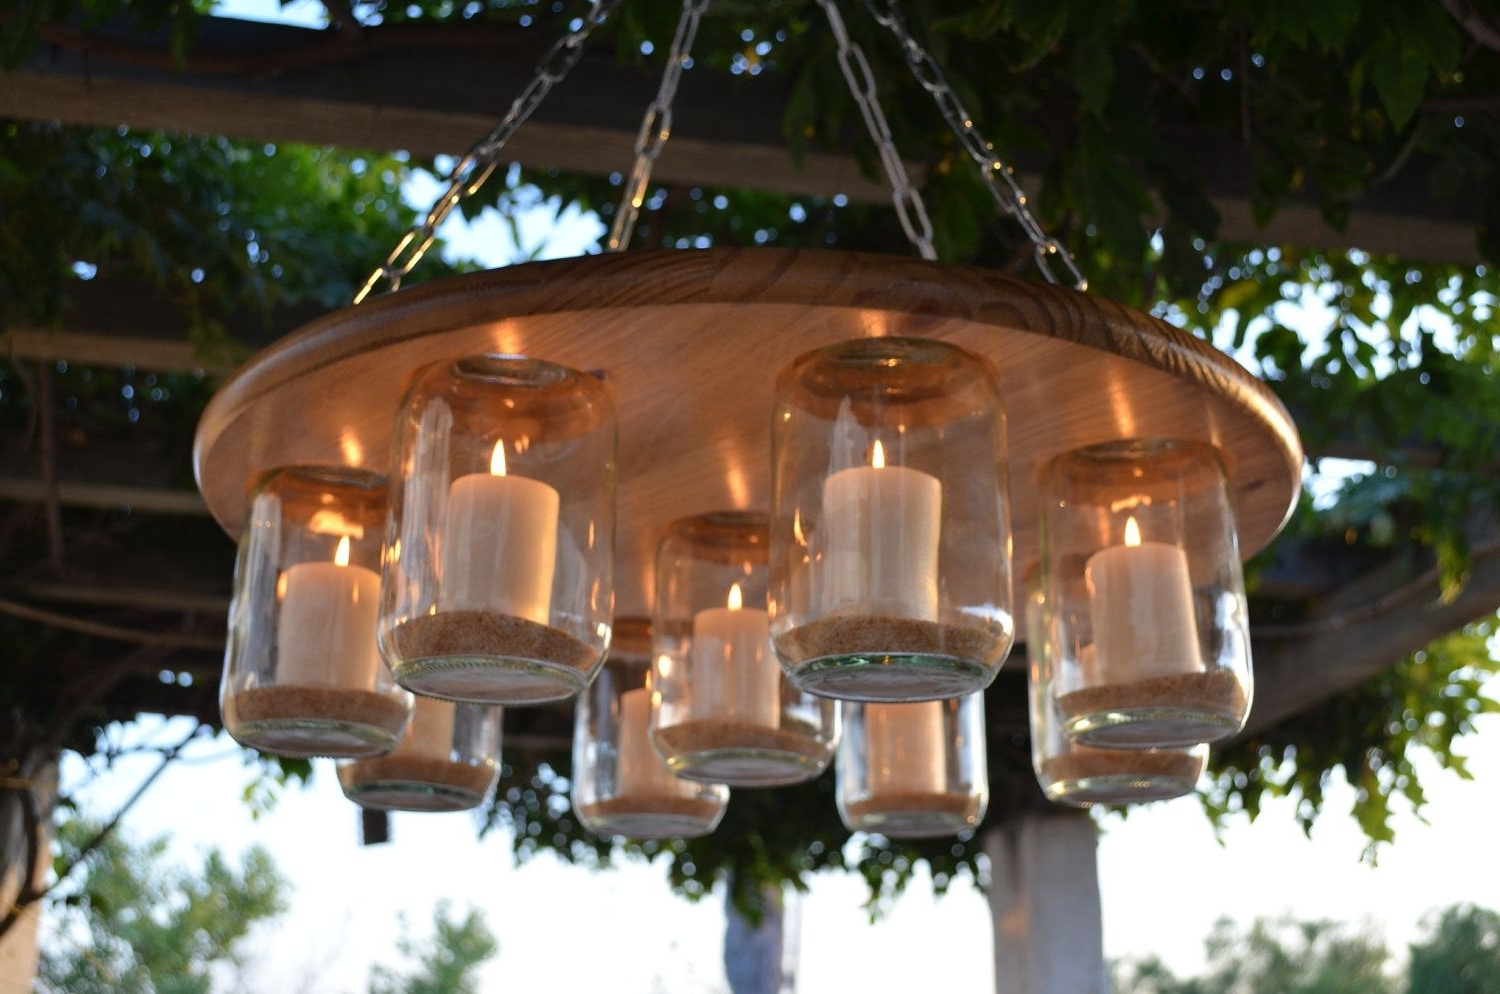 Diy Outdoor Hanging Lights Within 2019 Mason Jar Chandelier, Wedding, Patio Decor, Rustic Decor, Candle (View 3 of 20)